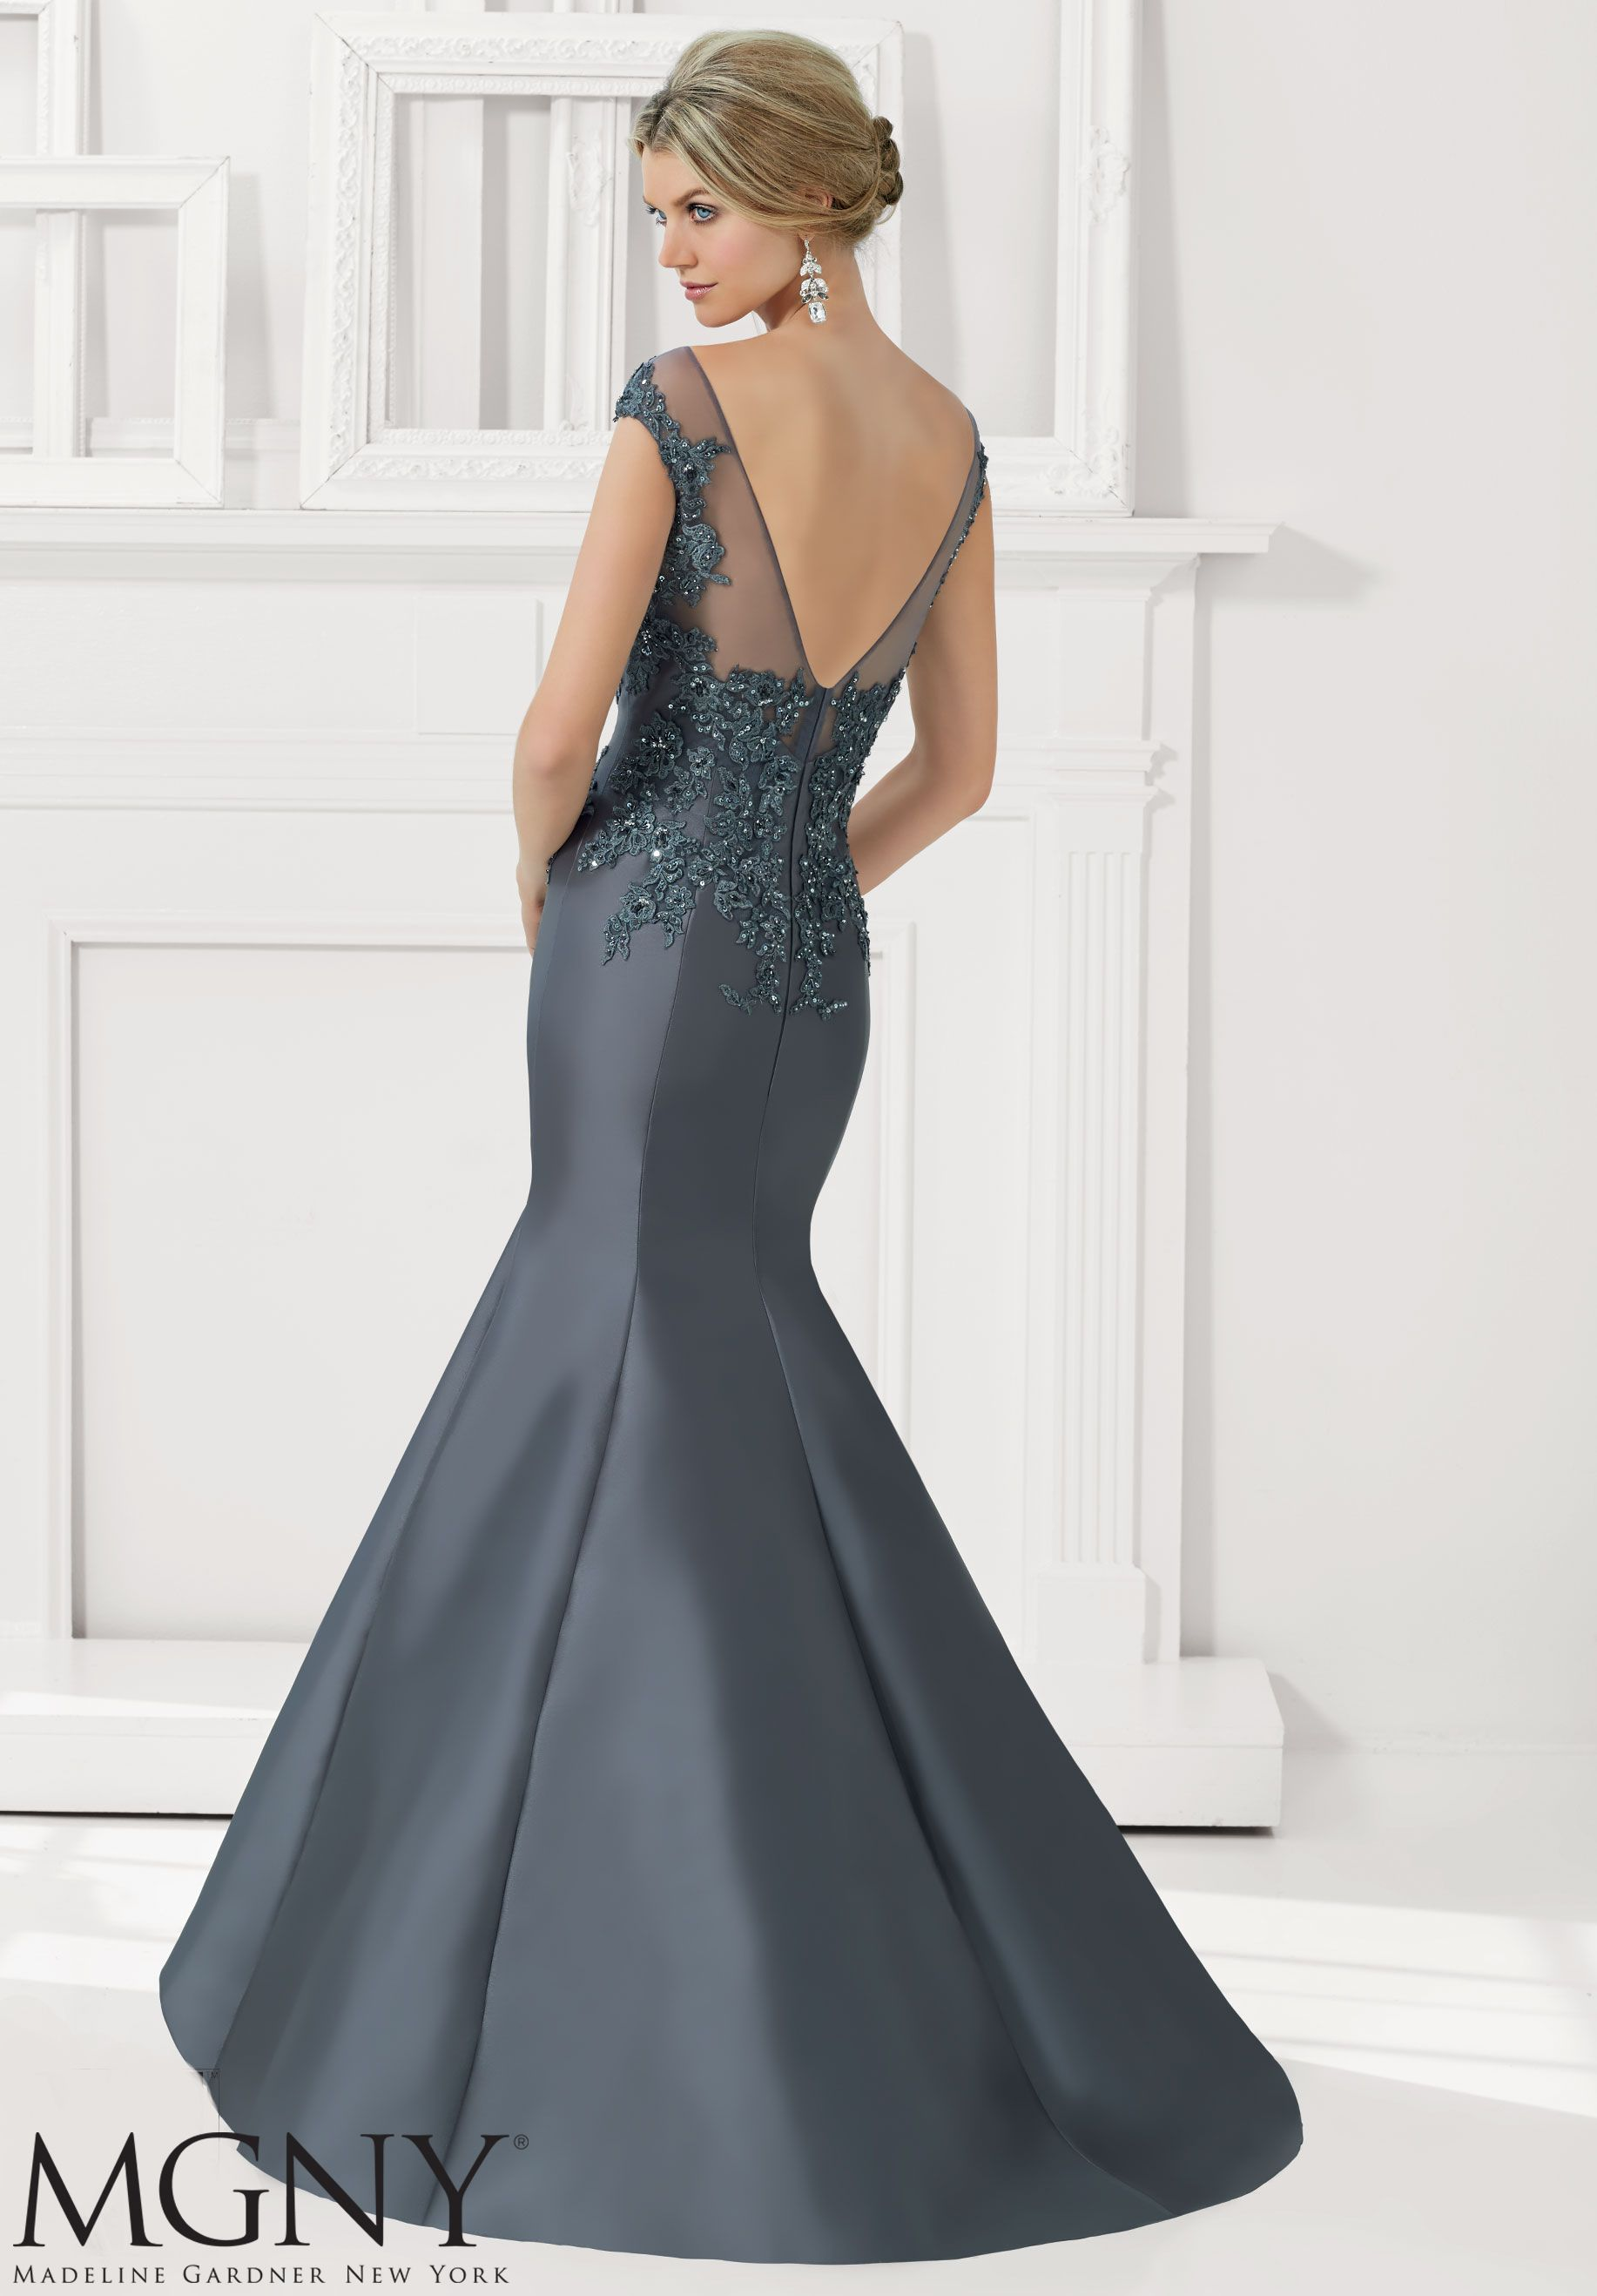 b7c5e840b6e3 Larissa Satin Evening Gown Mother of the Bride Dress with Beaded Lace  Appliques Designed by Madeline Gardner. Matching Stole.